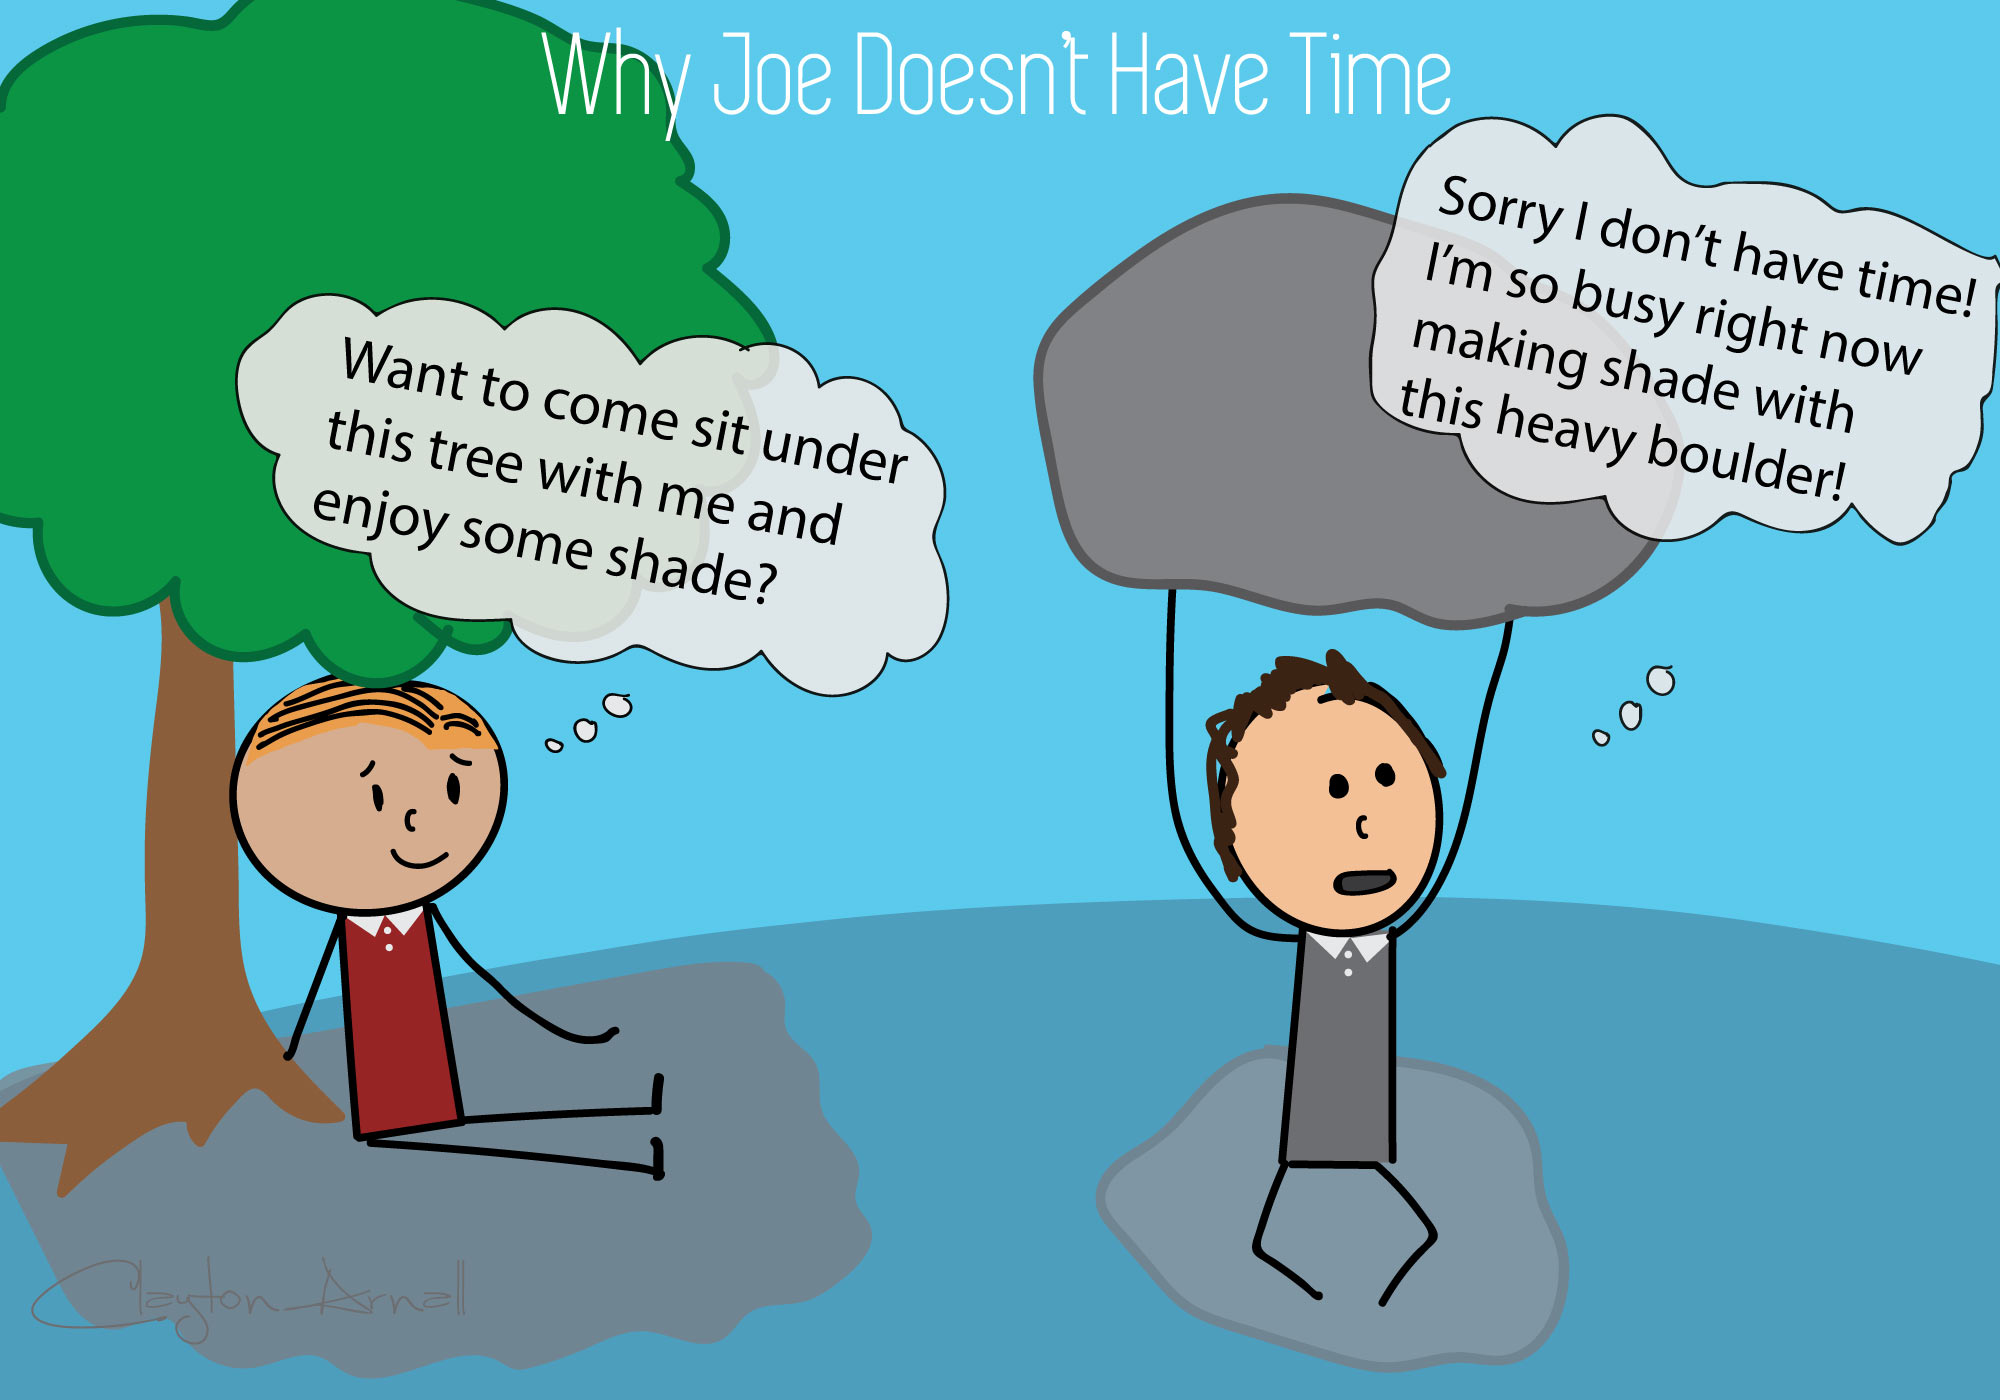 Why Joe Doesn't Have Time